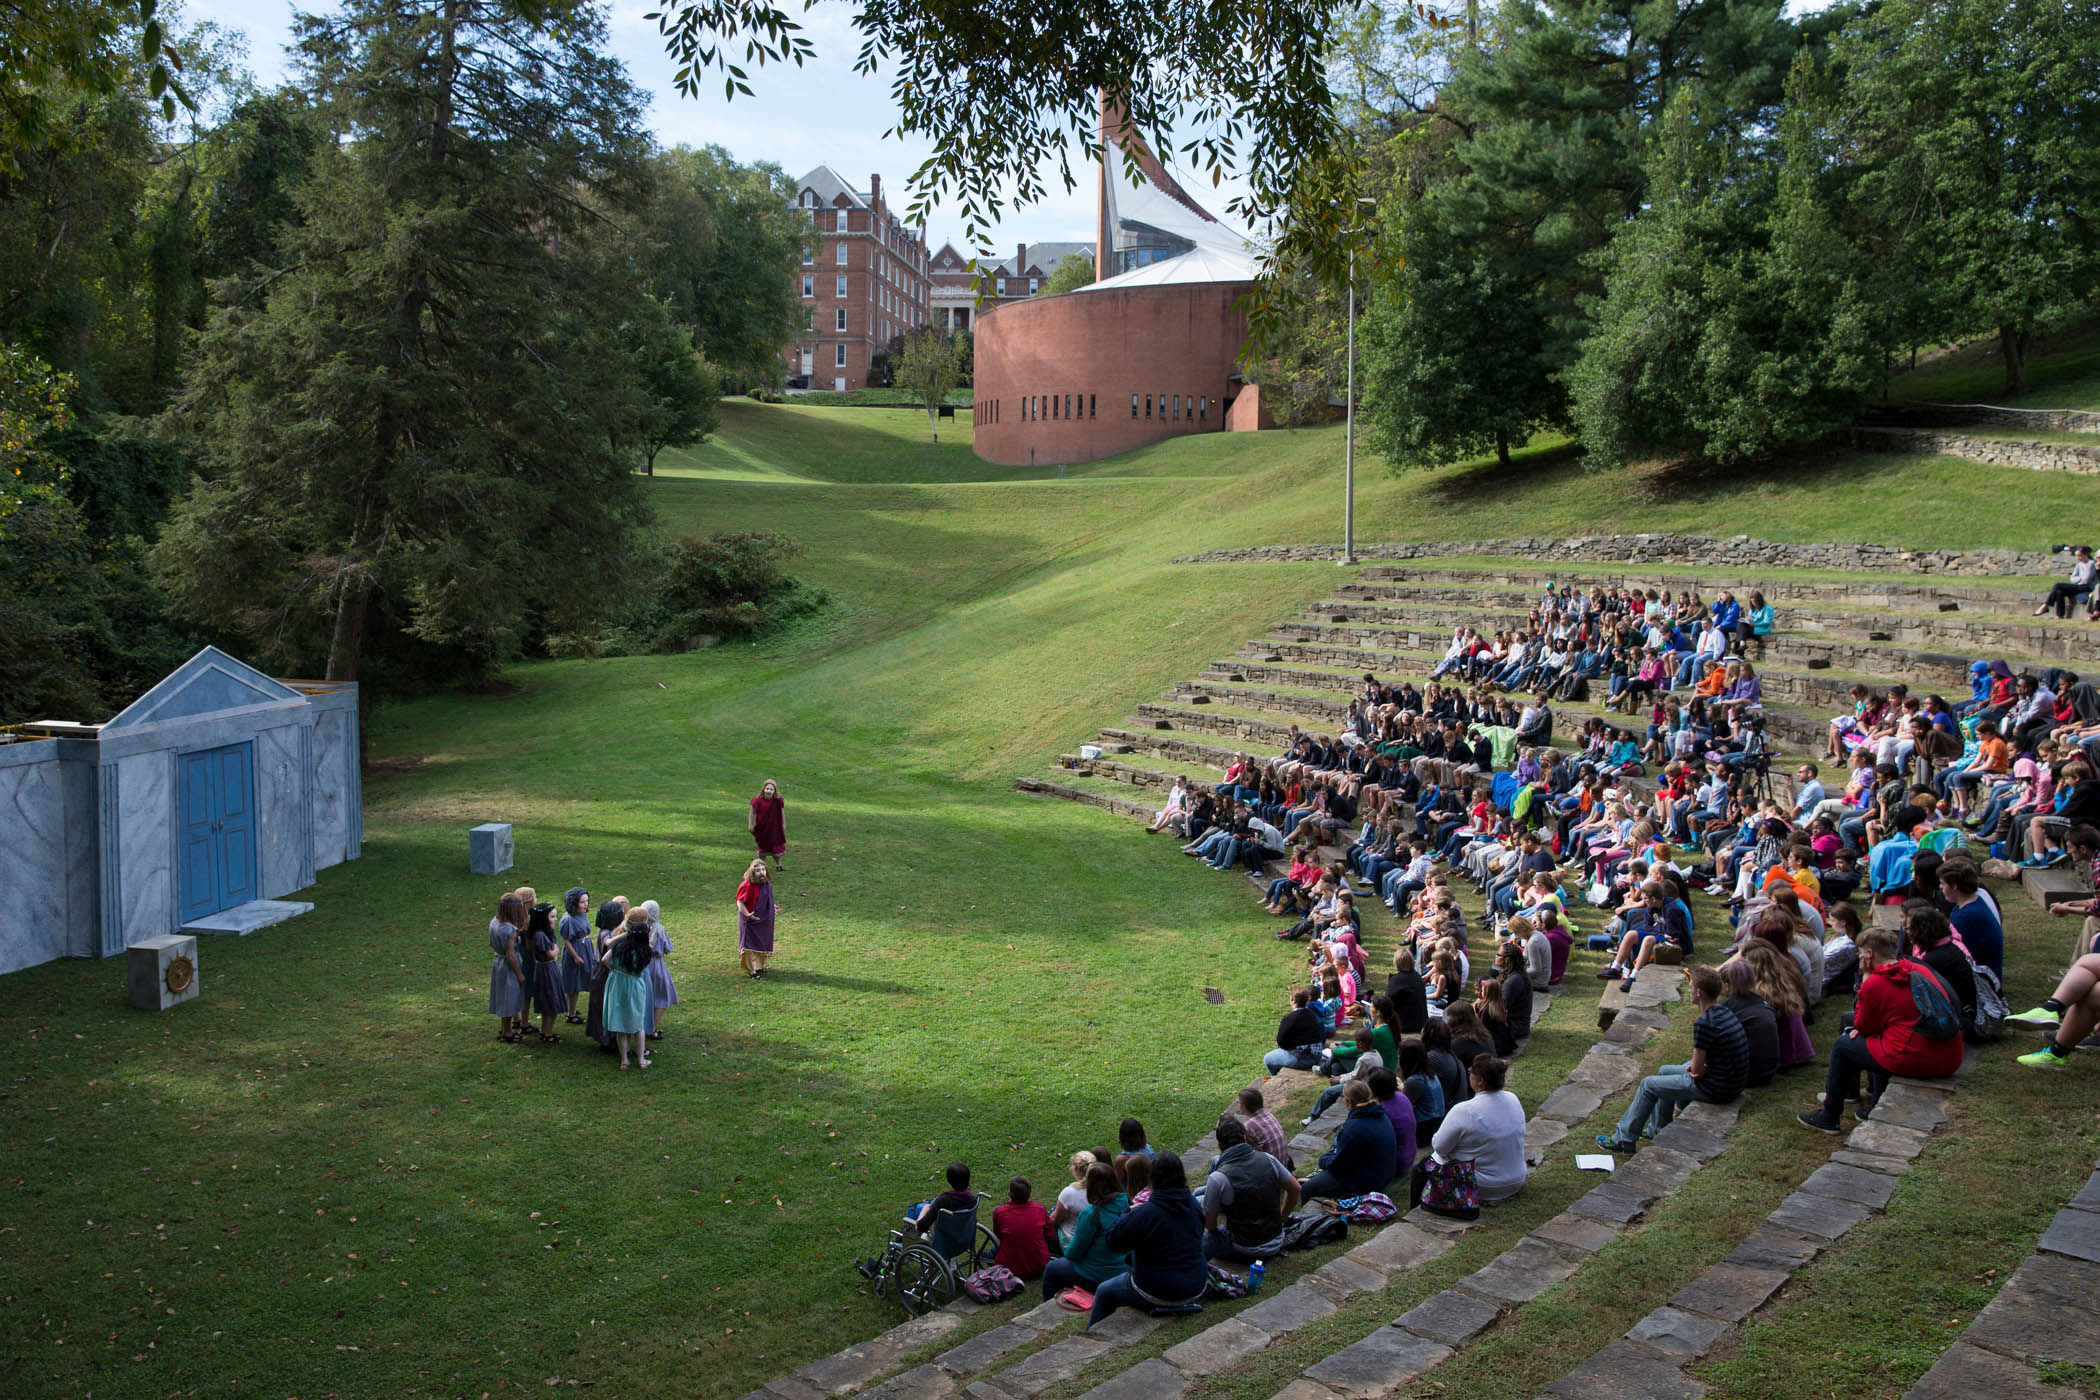 The Greek Play is performed in the Mabel K. Whiteside Greek Theatre